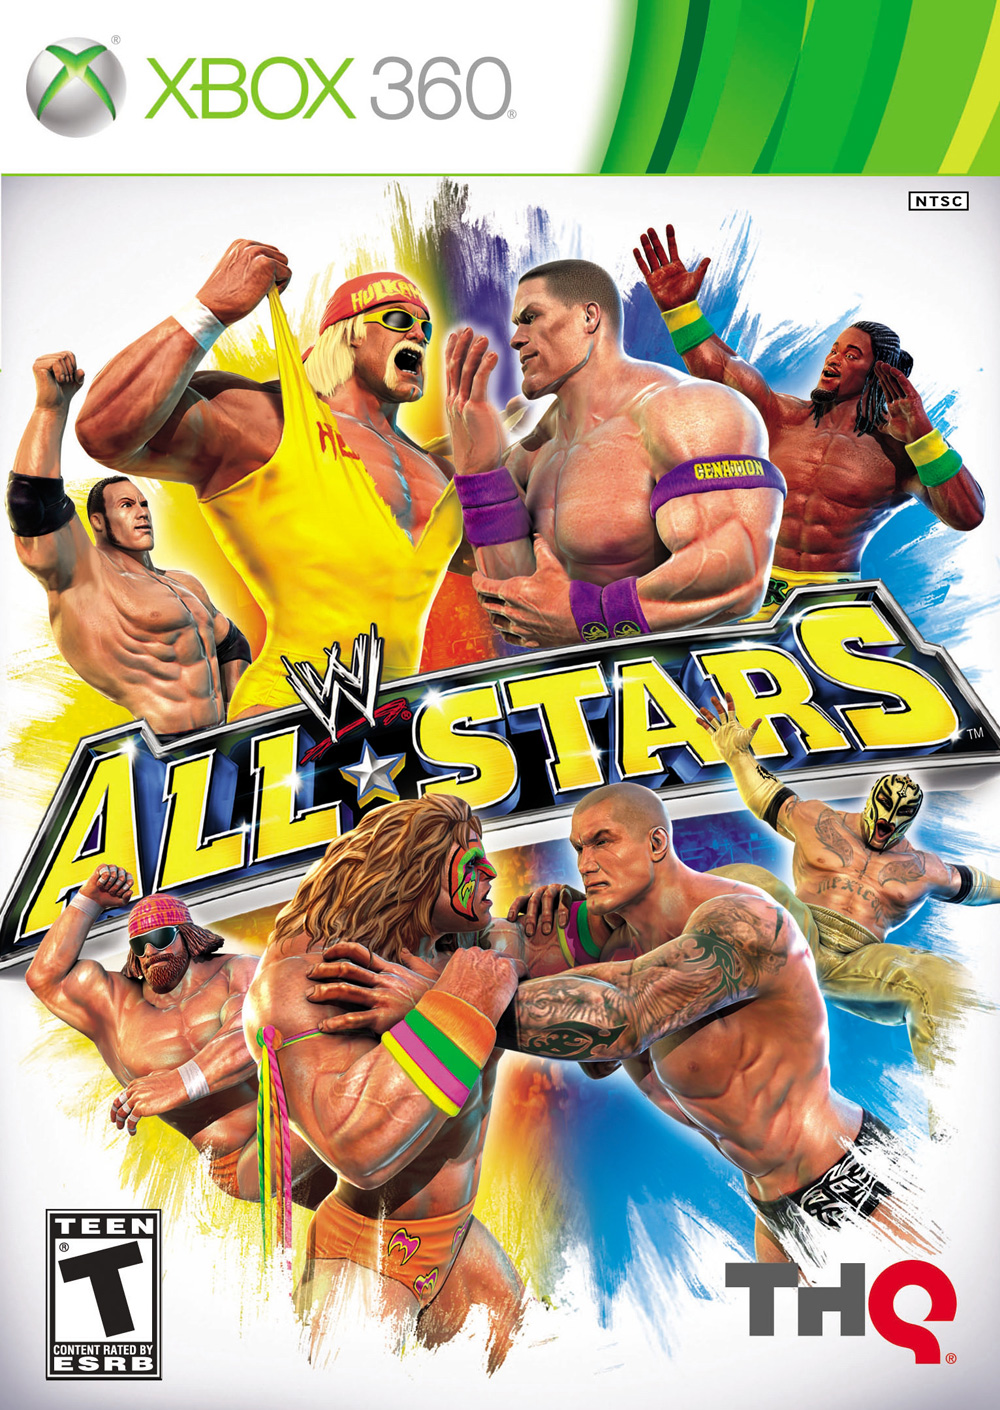 Wwe all stars xbox 360 games torrents.